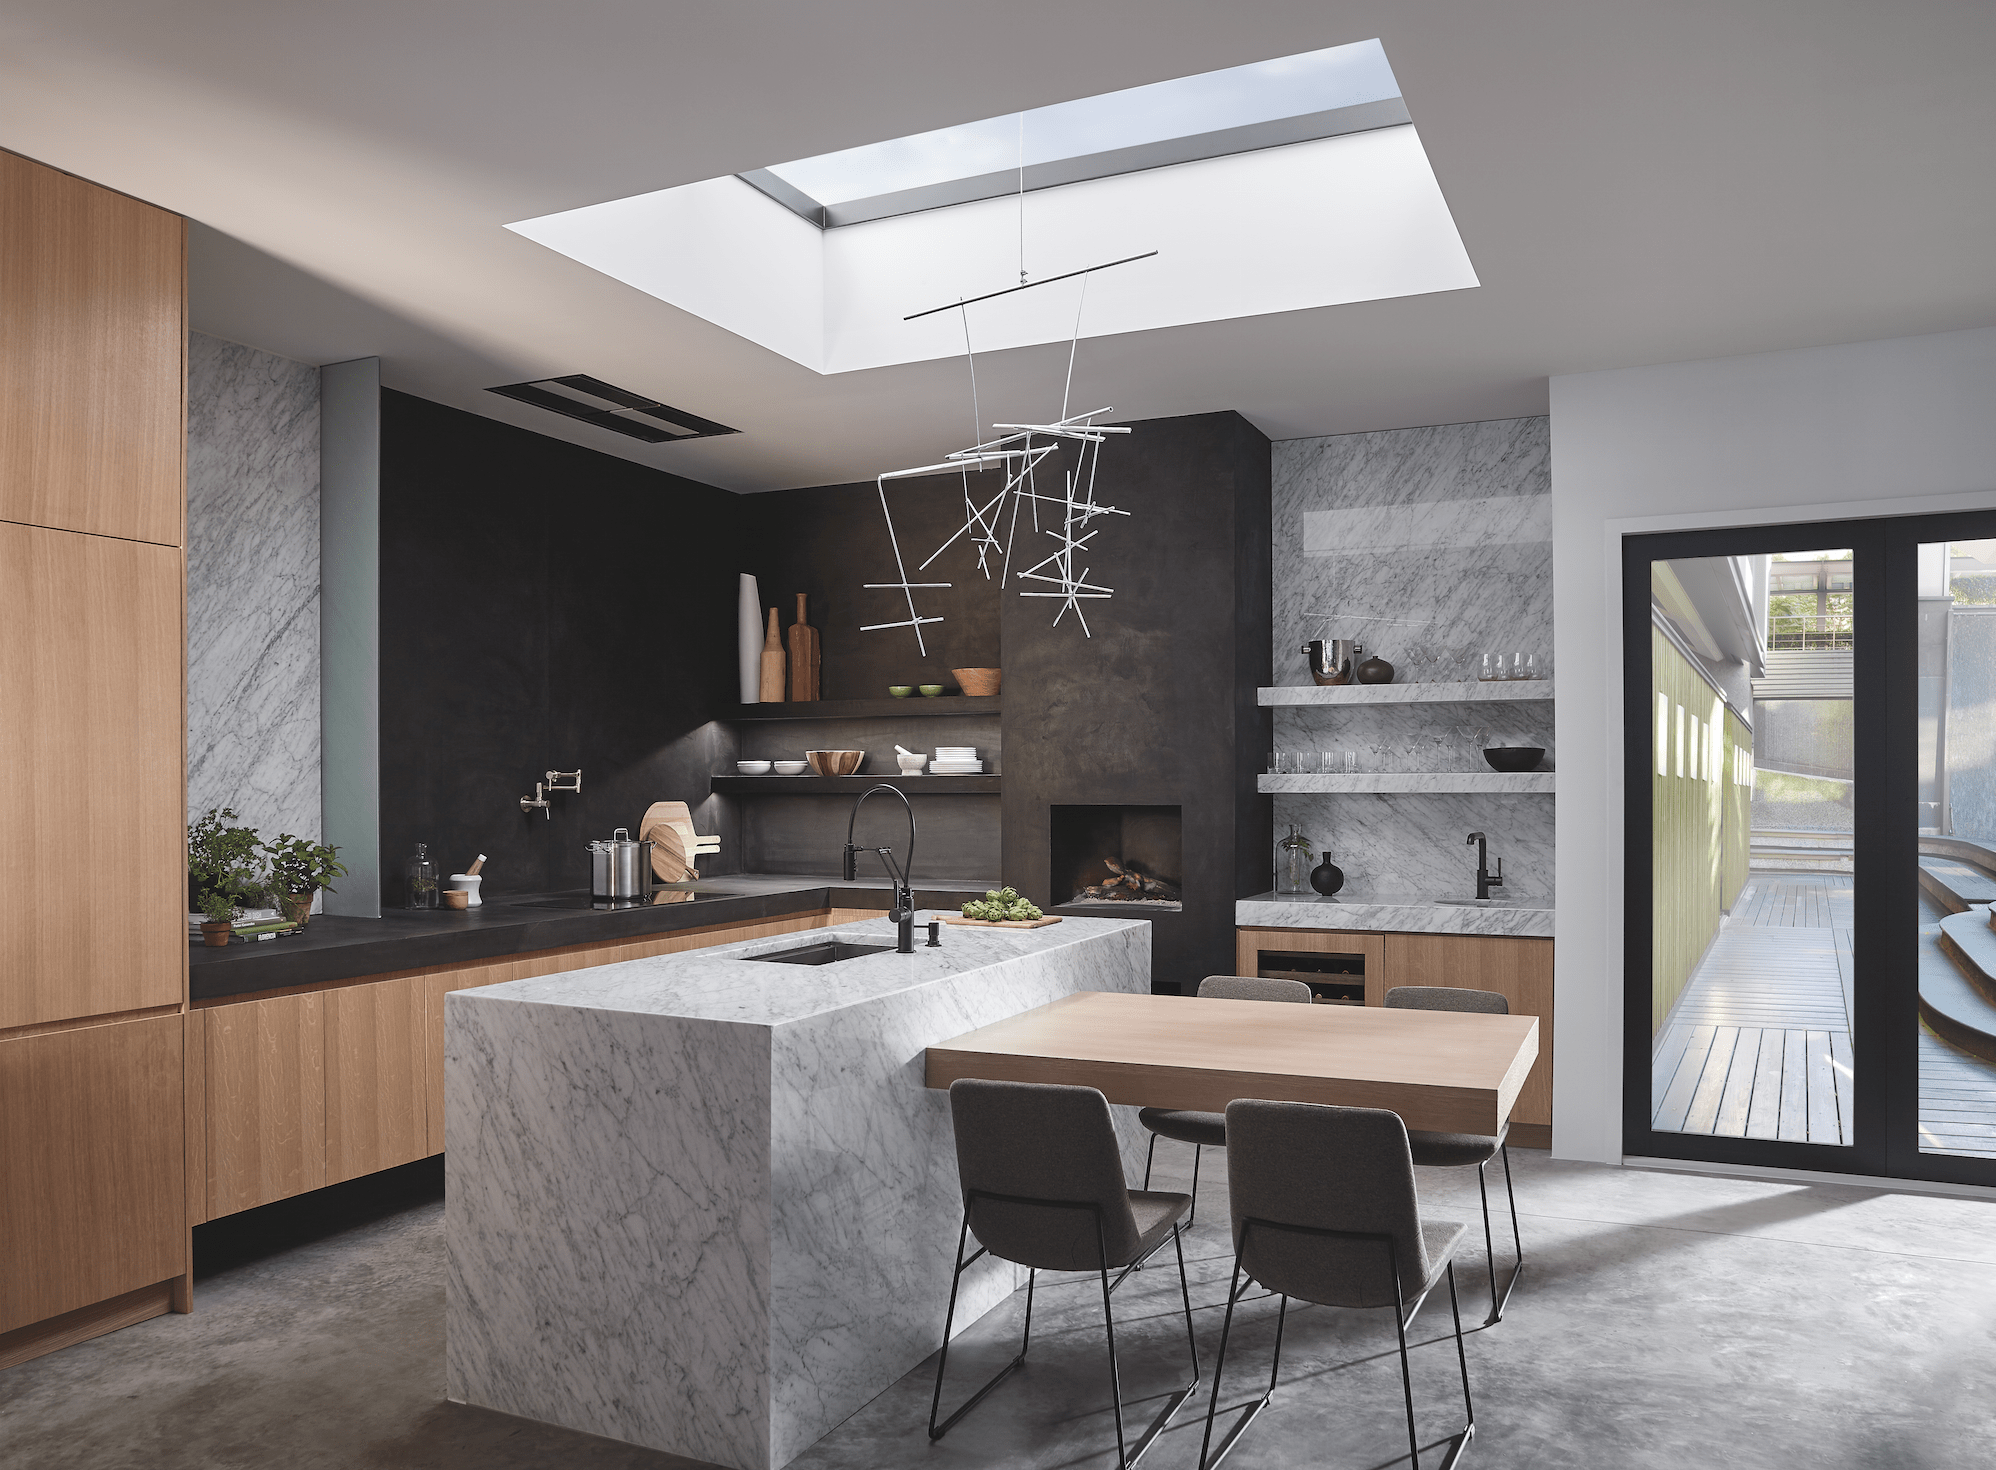 kitchen spaces black kitchen faucet The Solna kitchen faucet collection from Brizo features crisp lines and simple form inspired by contemporary Scandinavian furniture